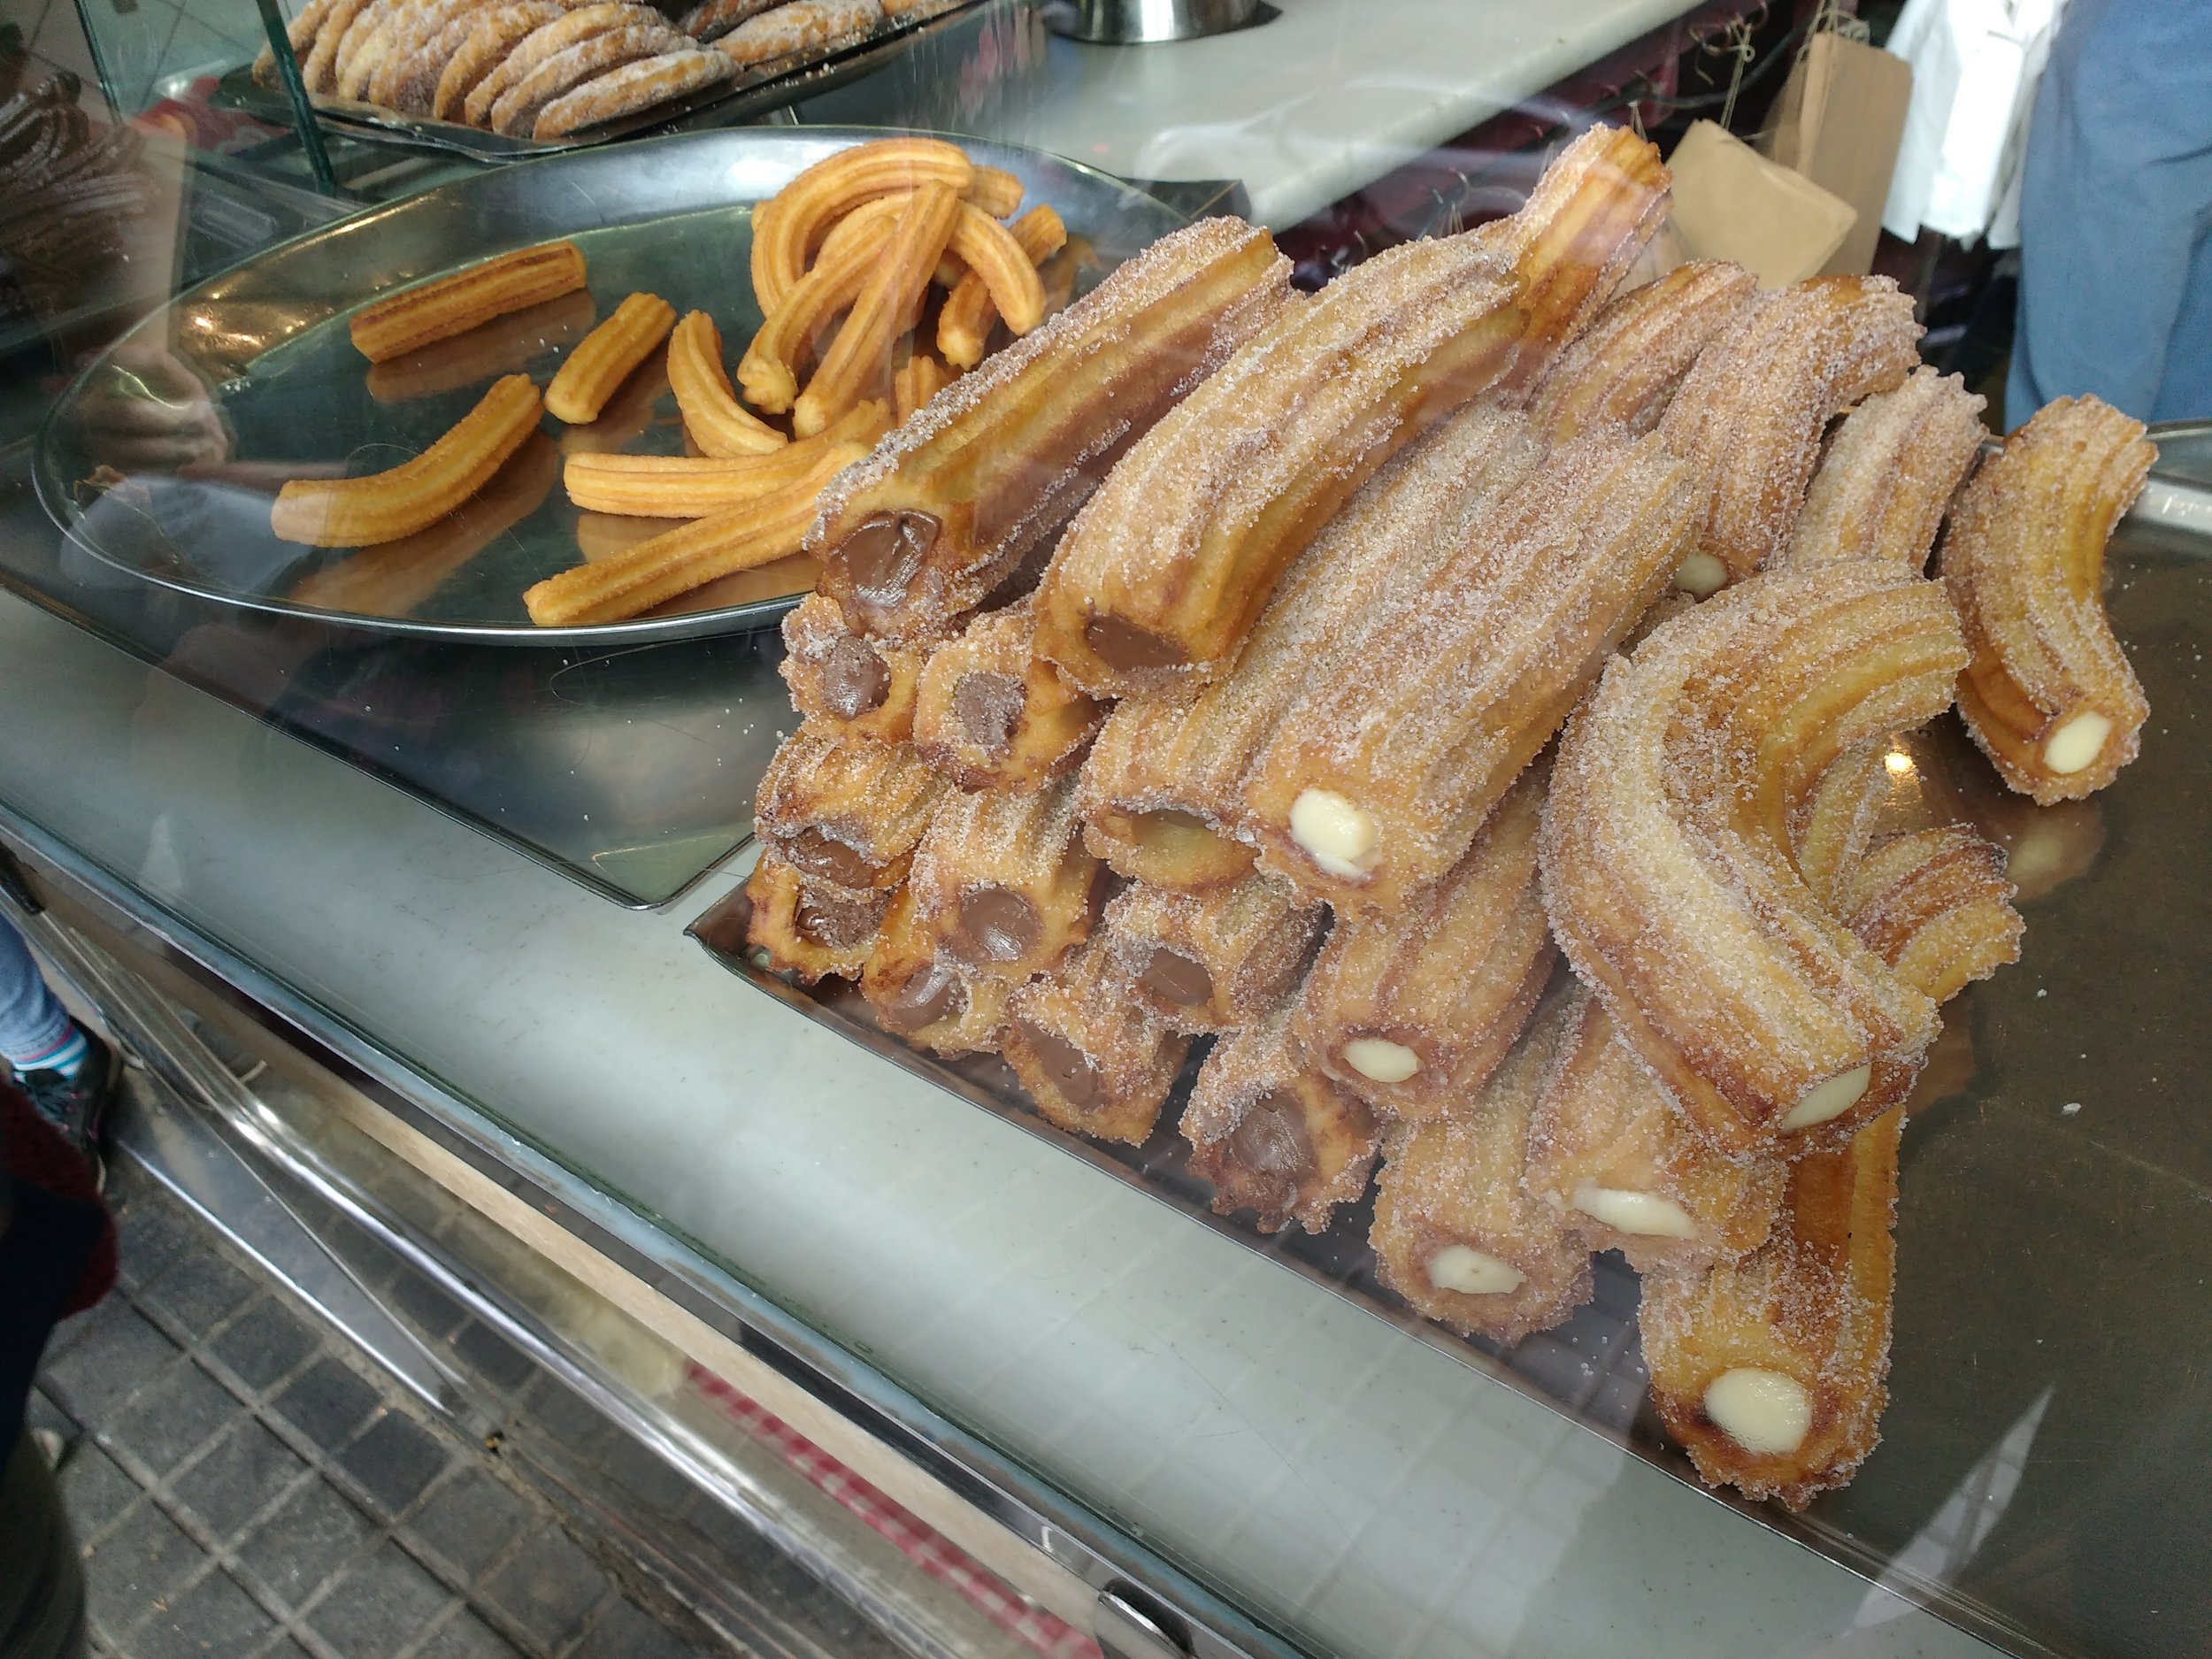 These are the famous Churros. You can choose regular, chocolate or with cream